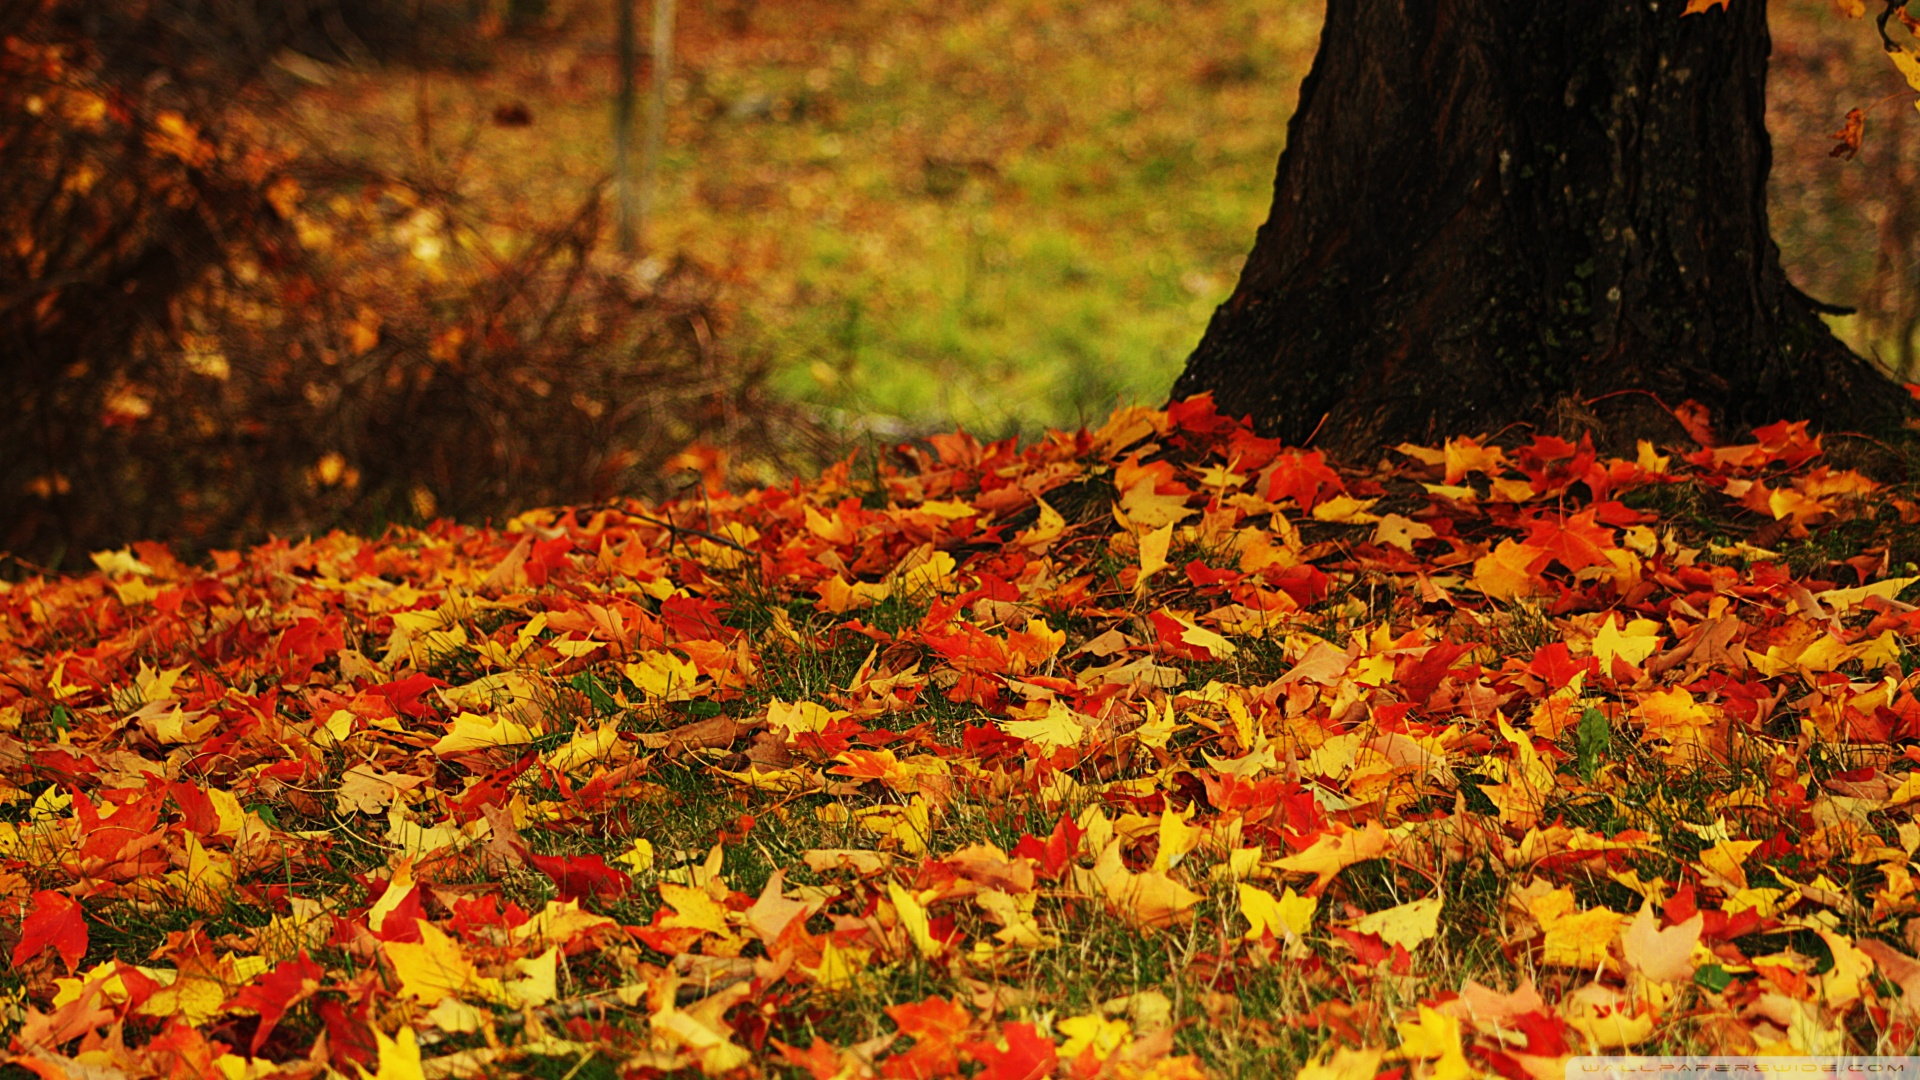 Beautiful 3d Wallpaper For Android Autumn Leaves Wallpapers High Quality Download Free